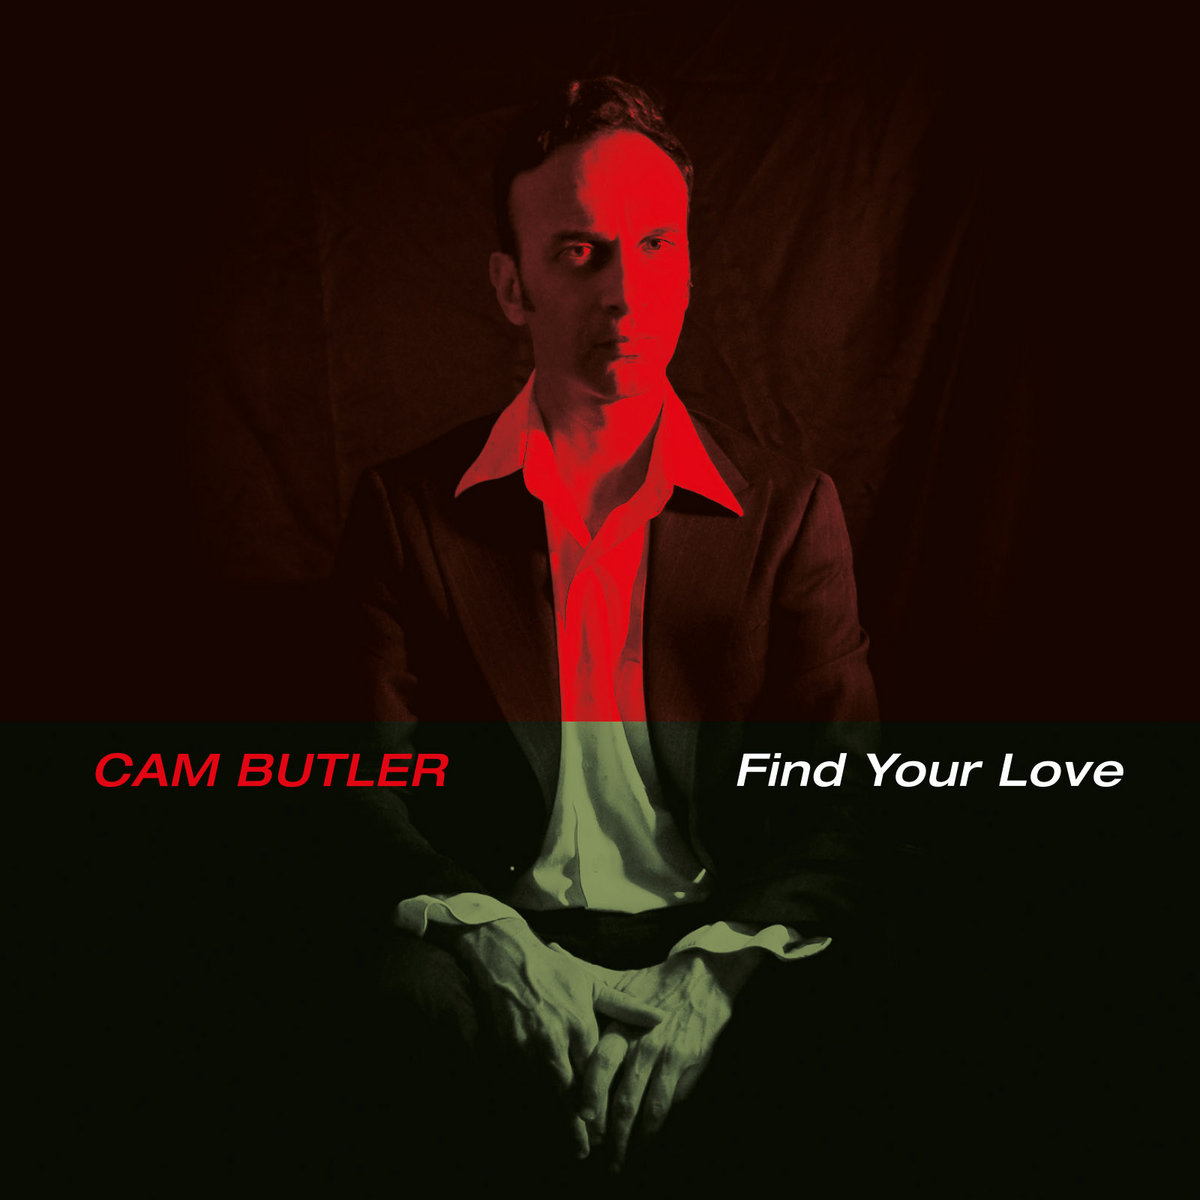 Find your love free download